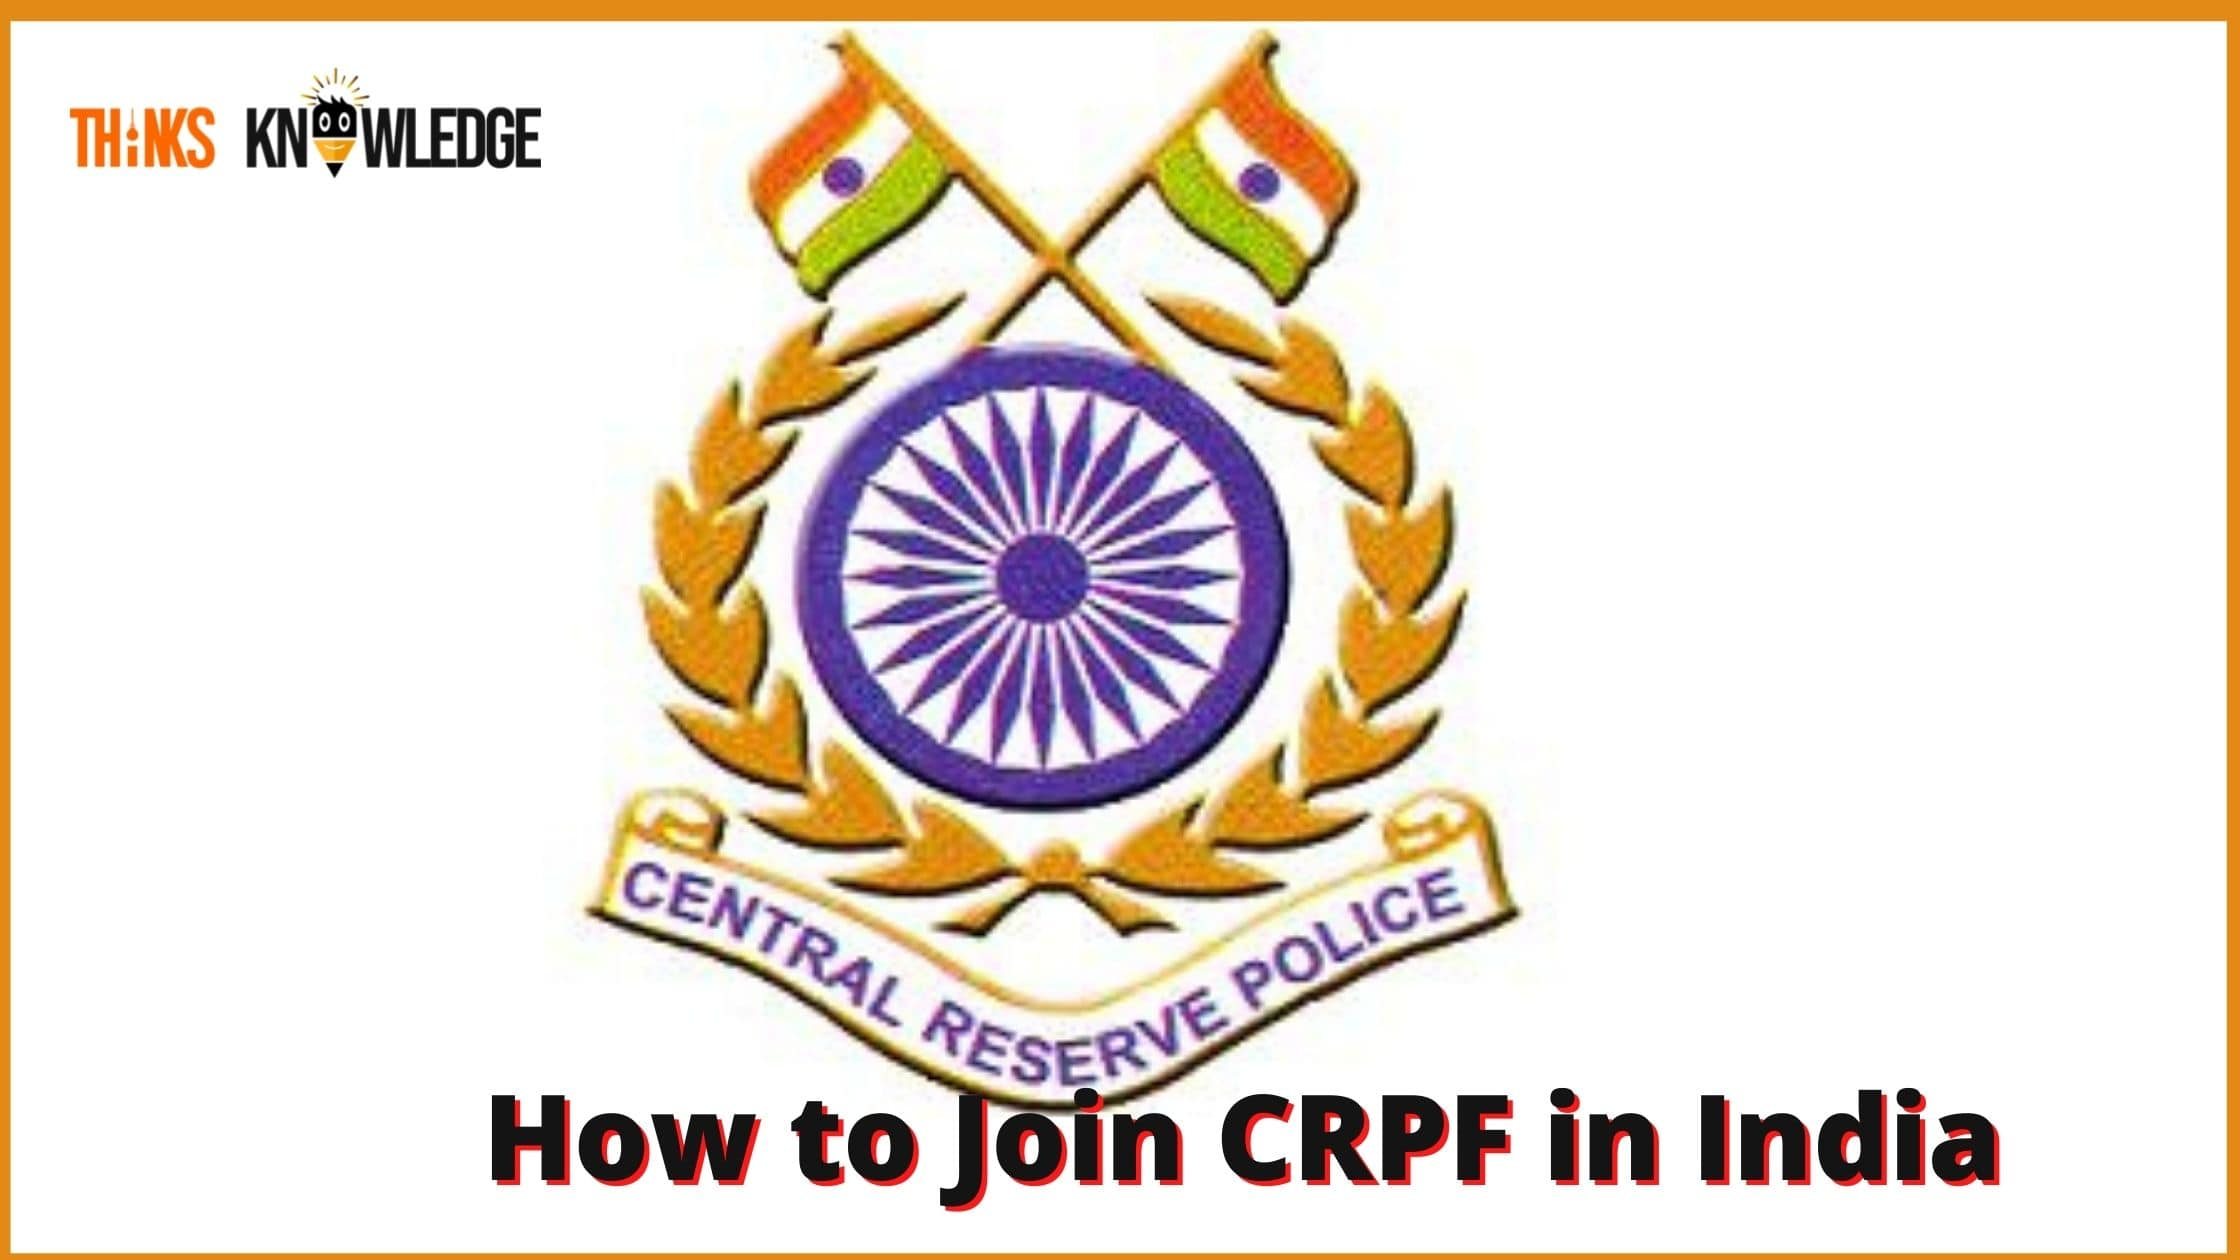 How to join crpf